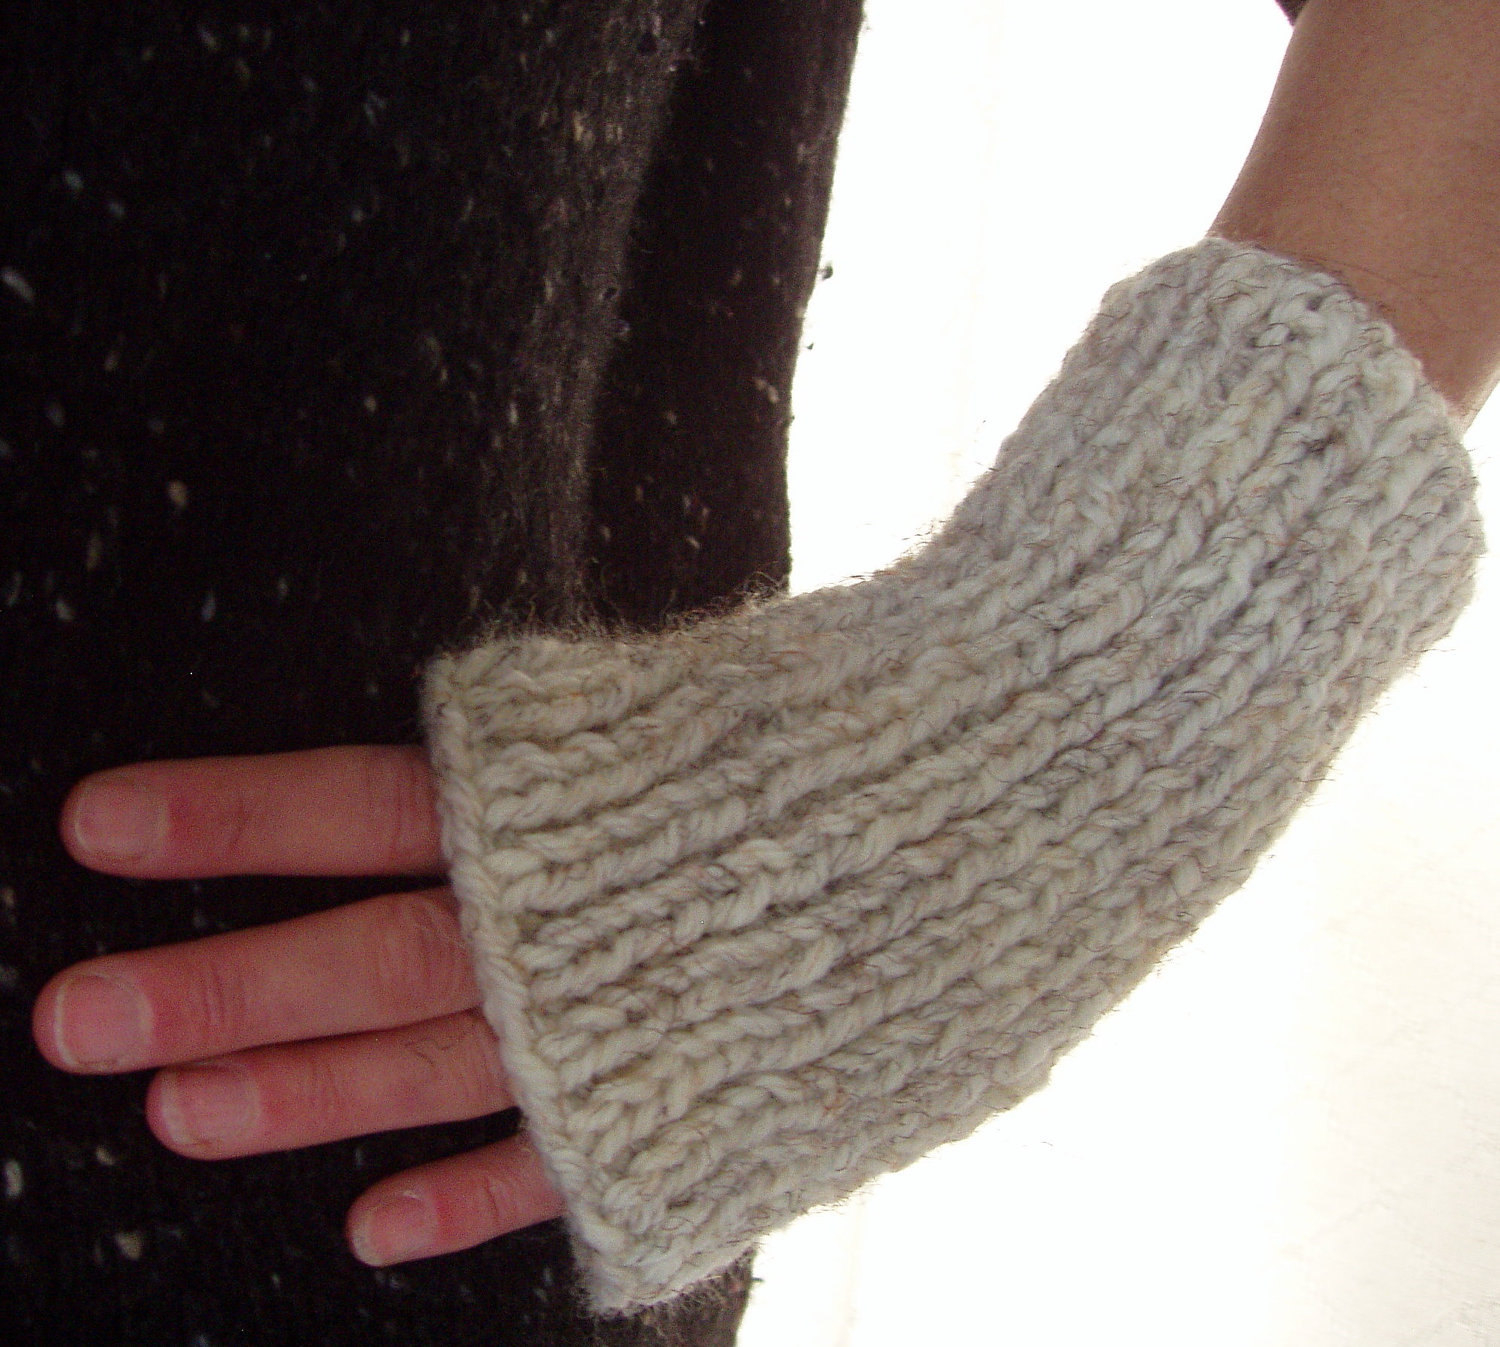 Mens Fingerless Gloves Knit Pattern Quick Knit Gloves Mens Fingerless Gloves Knitting Pattern Easy Woolen Glove Simple Chunky Knit Gloves Gift For Men Father Giftdara Gloves